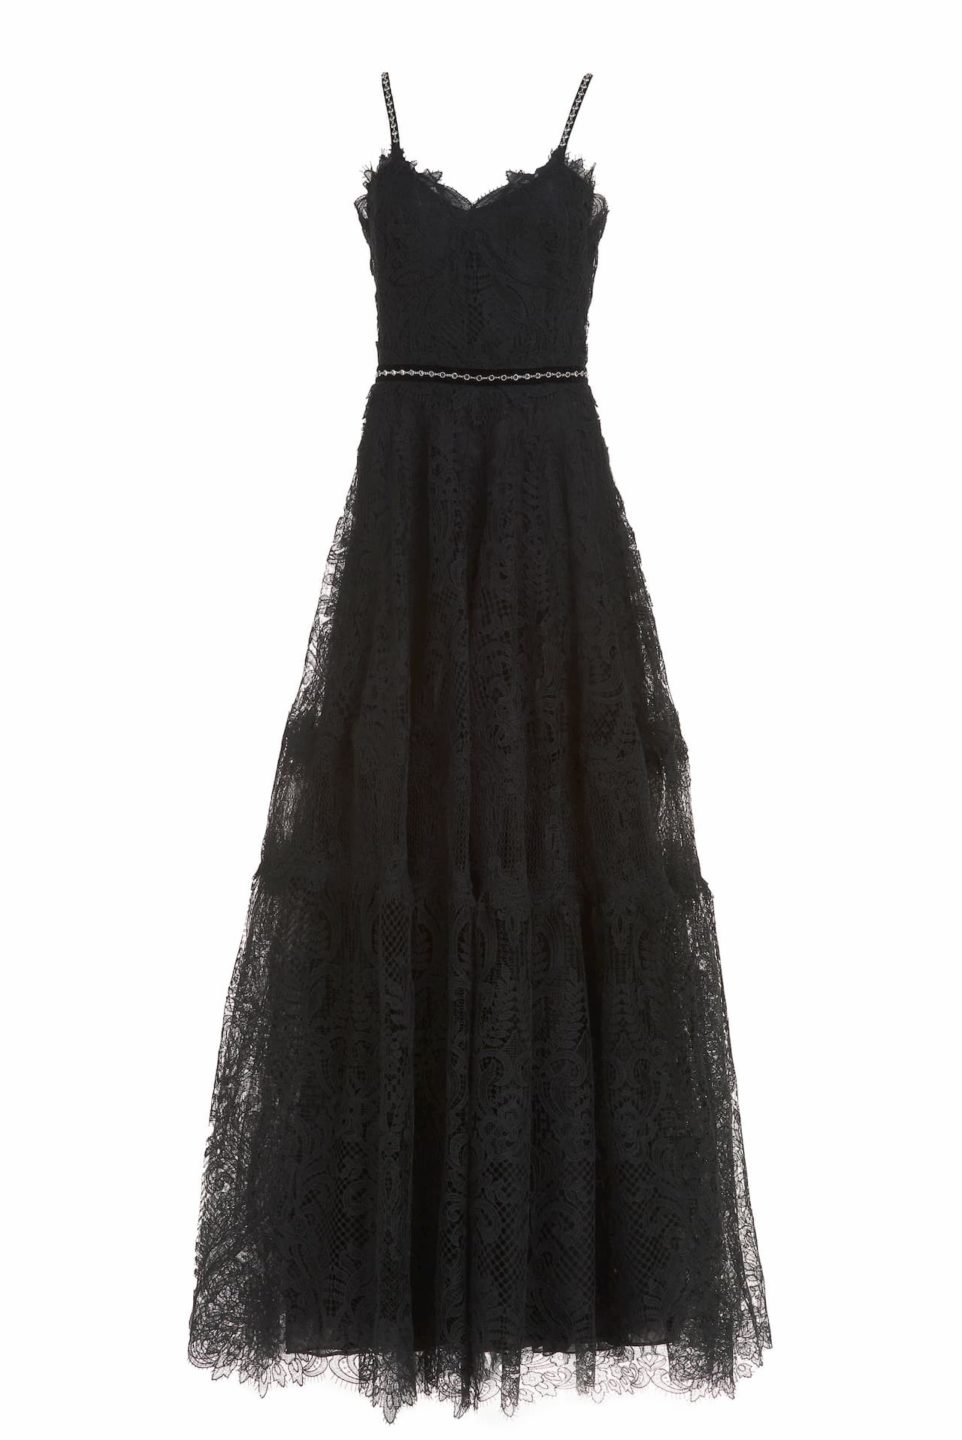 Moira CR1907 black gossamer lace gown with Swarovski details